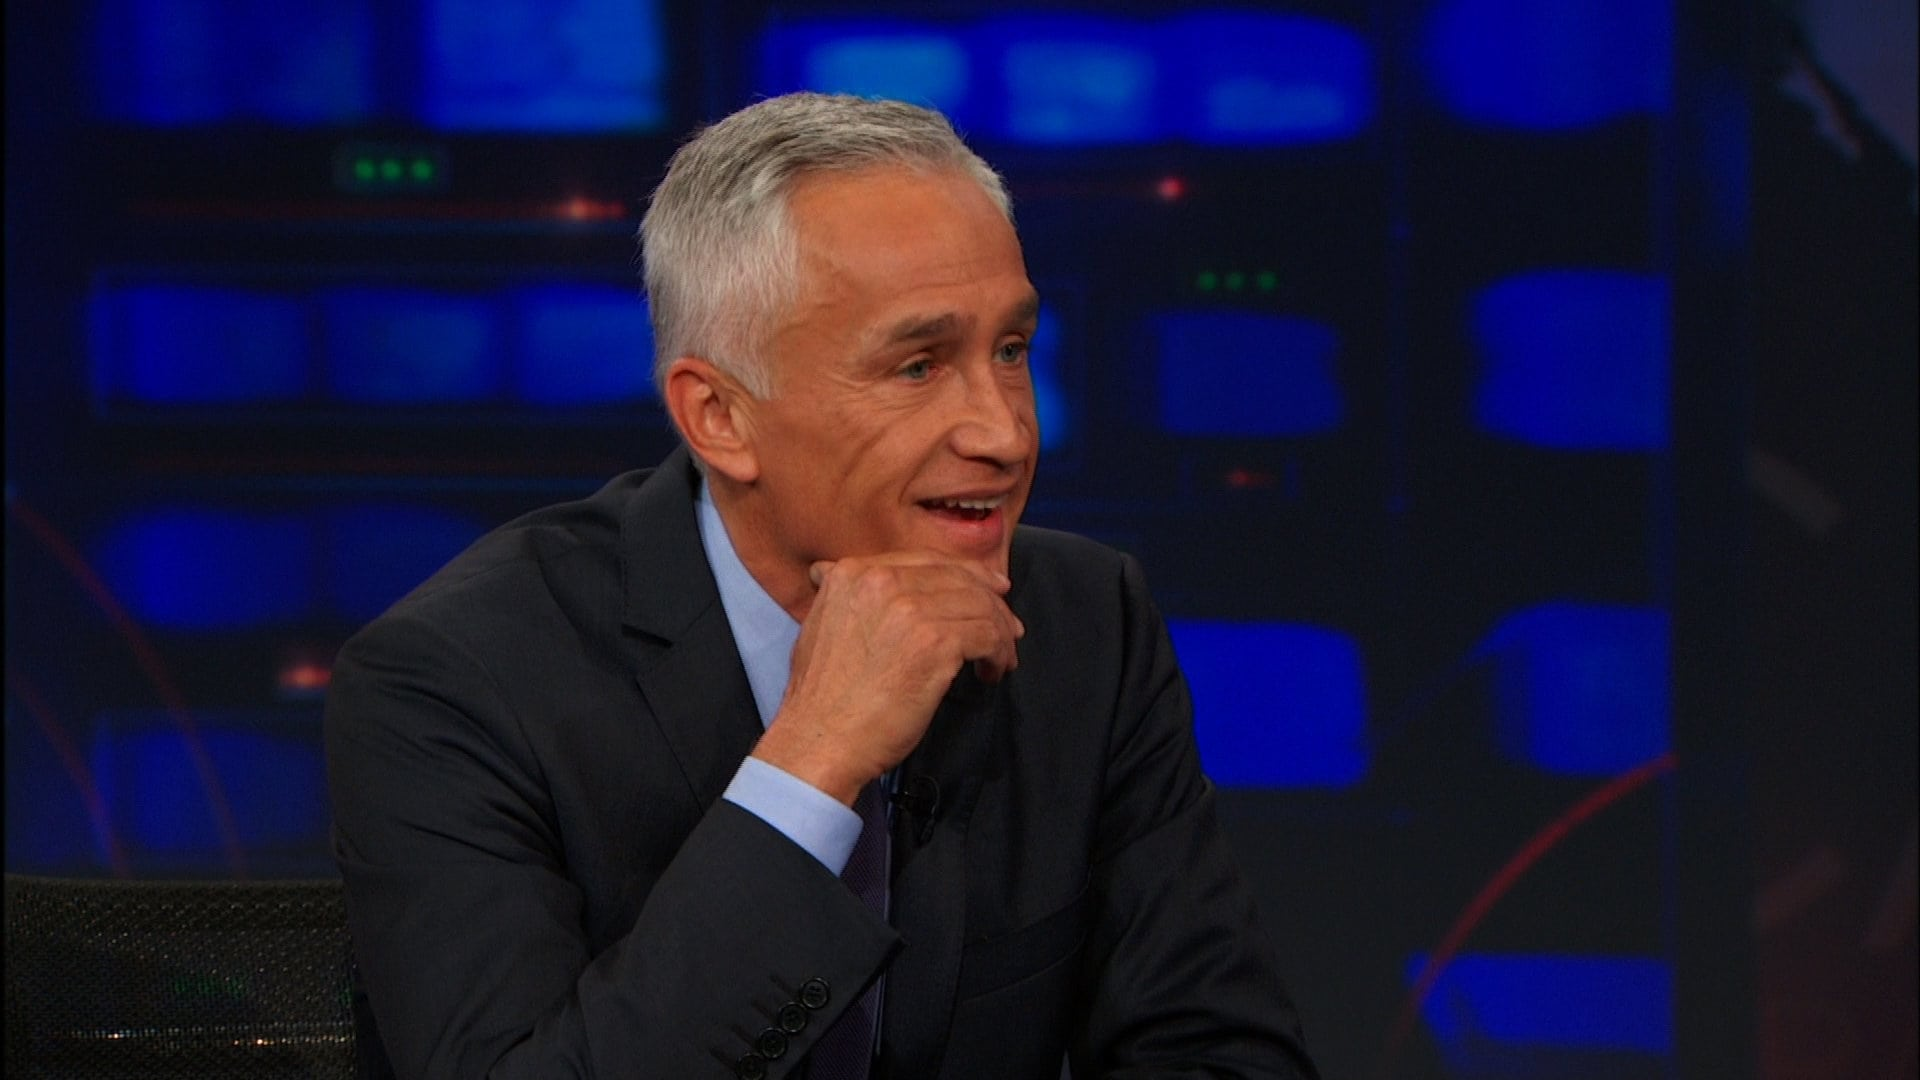 The Daily Show with Trevor Noah Season 19 :Episode 32  Jorge Ramos